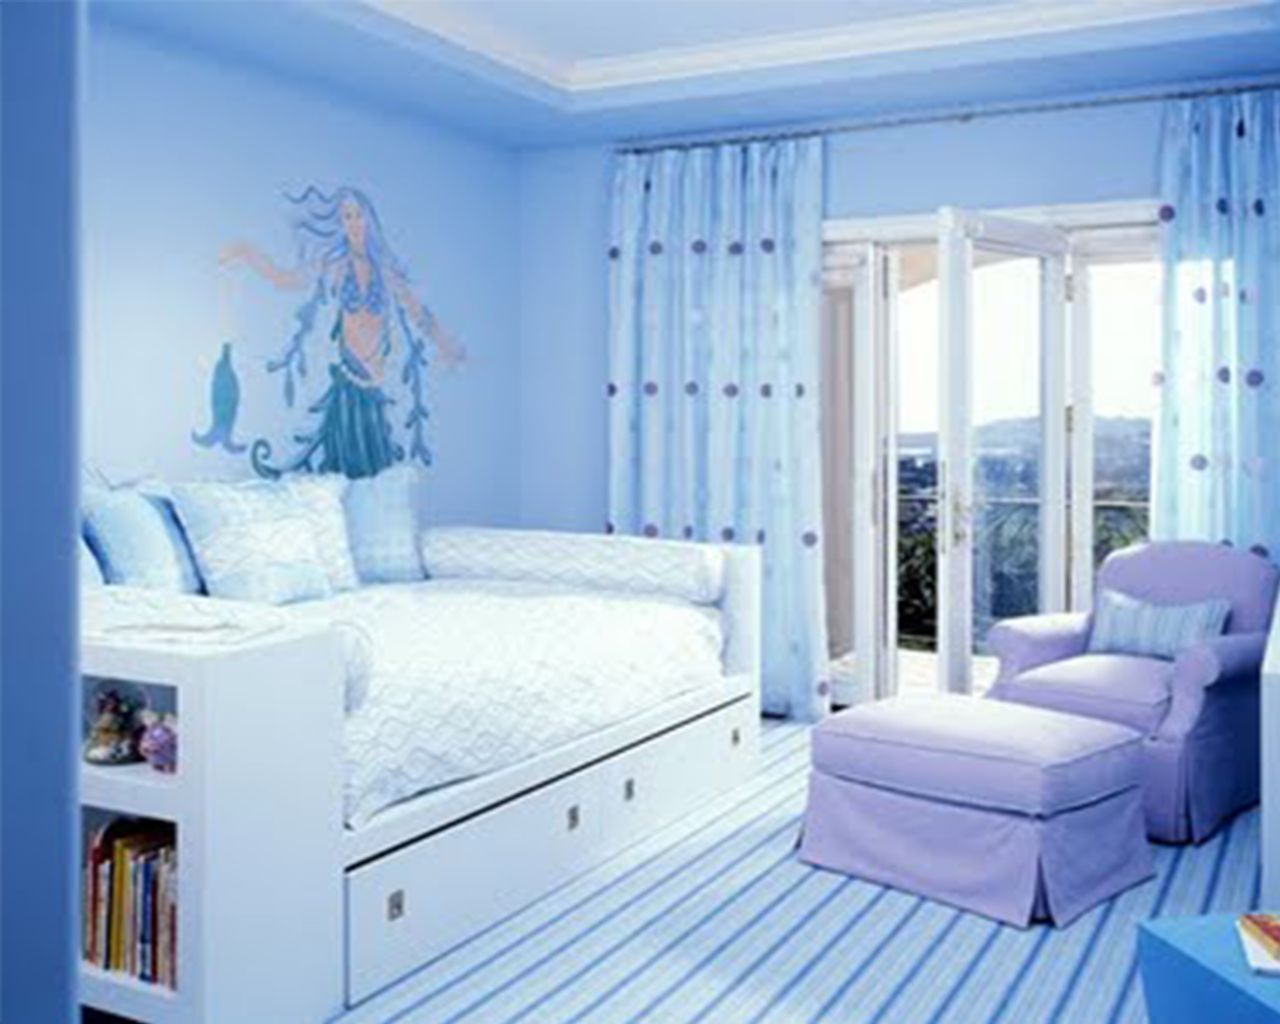 Bed For Teenage Girl Bedroom Bedroom Ideas For Teenage Girls Kids Twin Beds